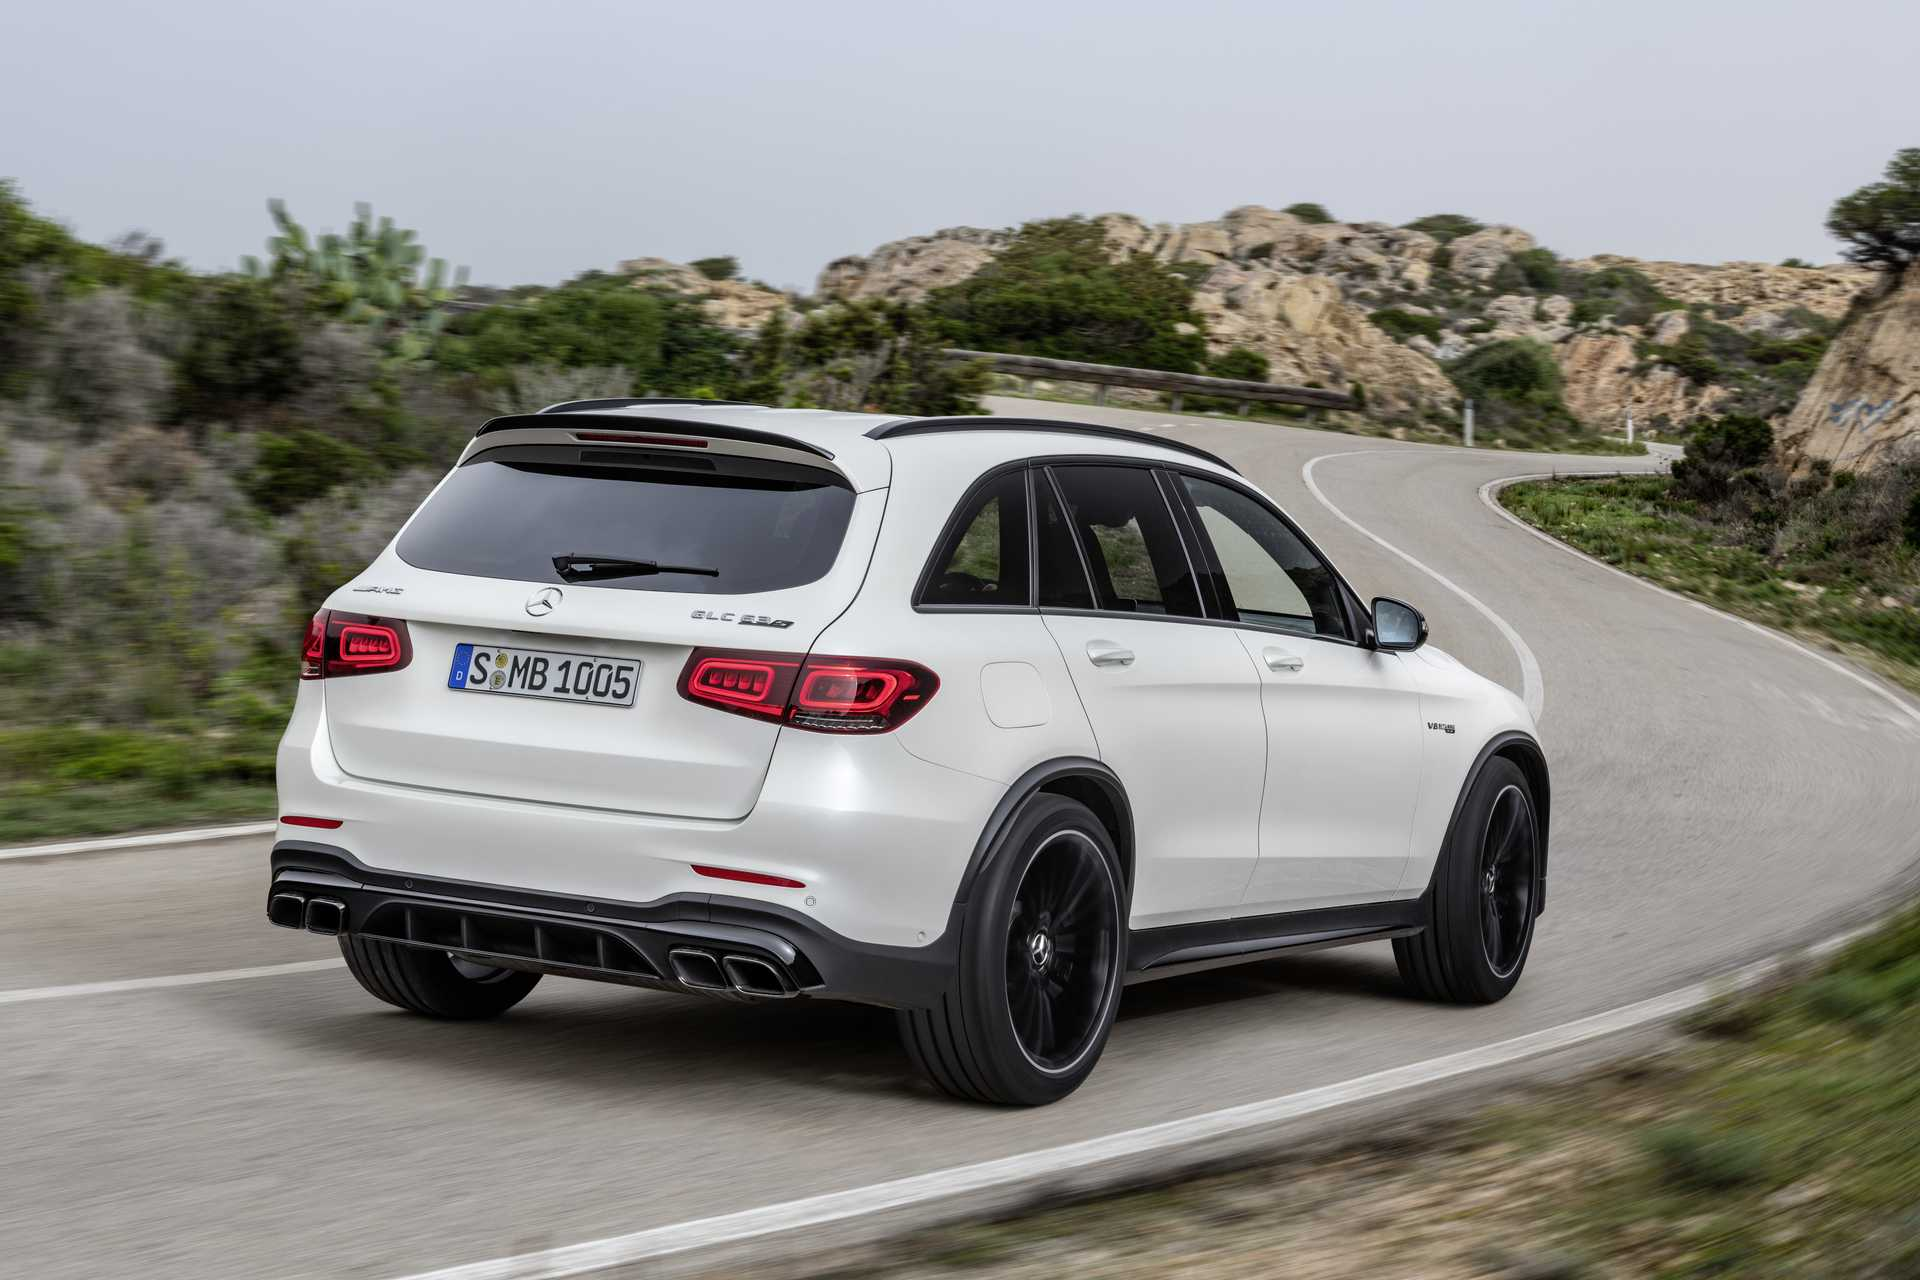 Mercedes-Benz AMG GLC 63 S 4MATIC+  , 510hp, 2019